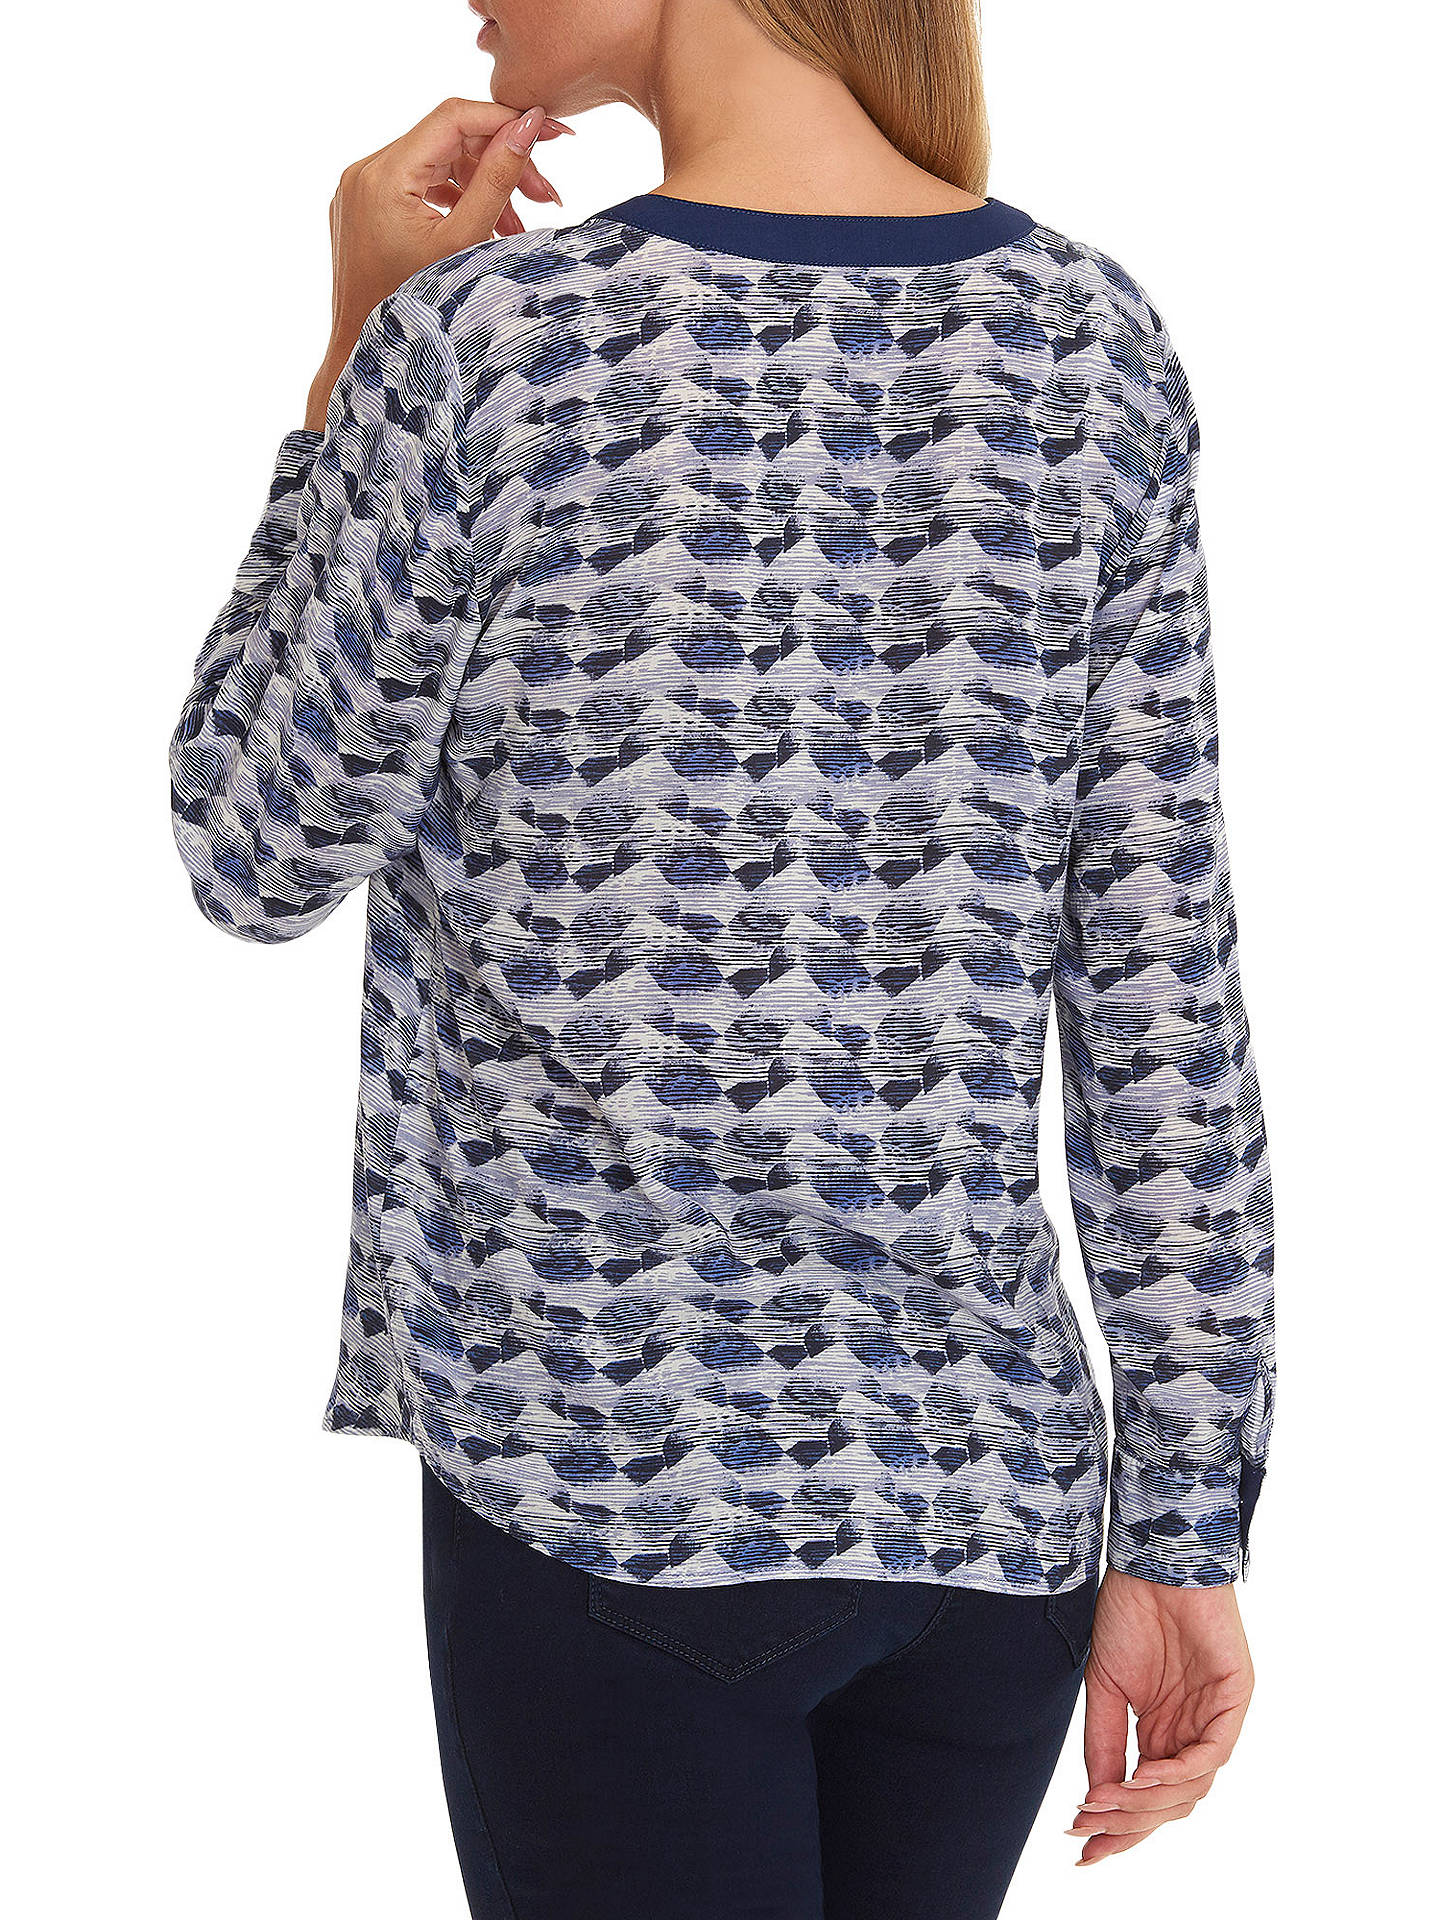 BuyBetty Barclay Graphic Print Blouse, Blue/Cream, 10 Online at johnlewis.com